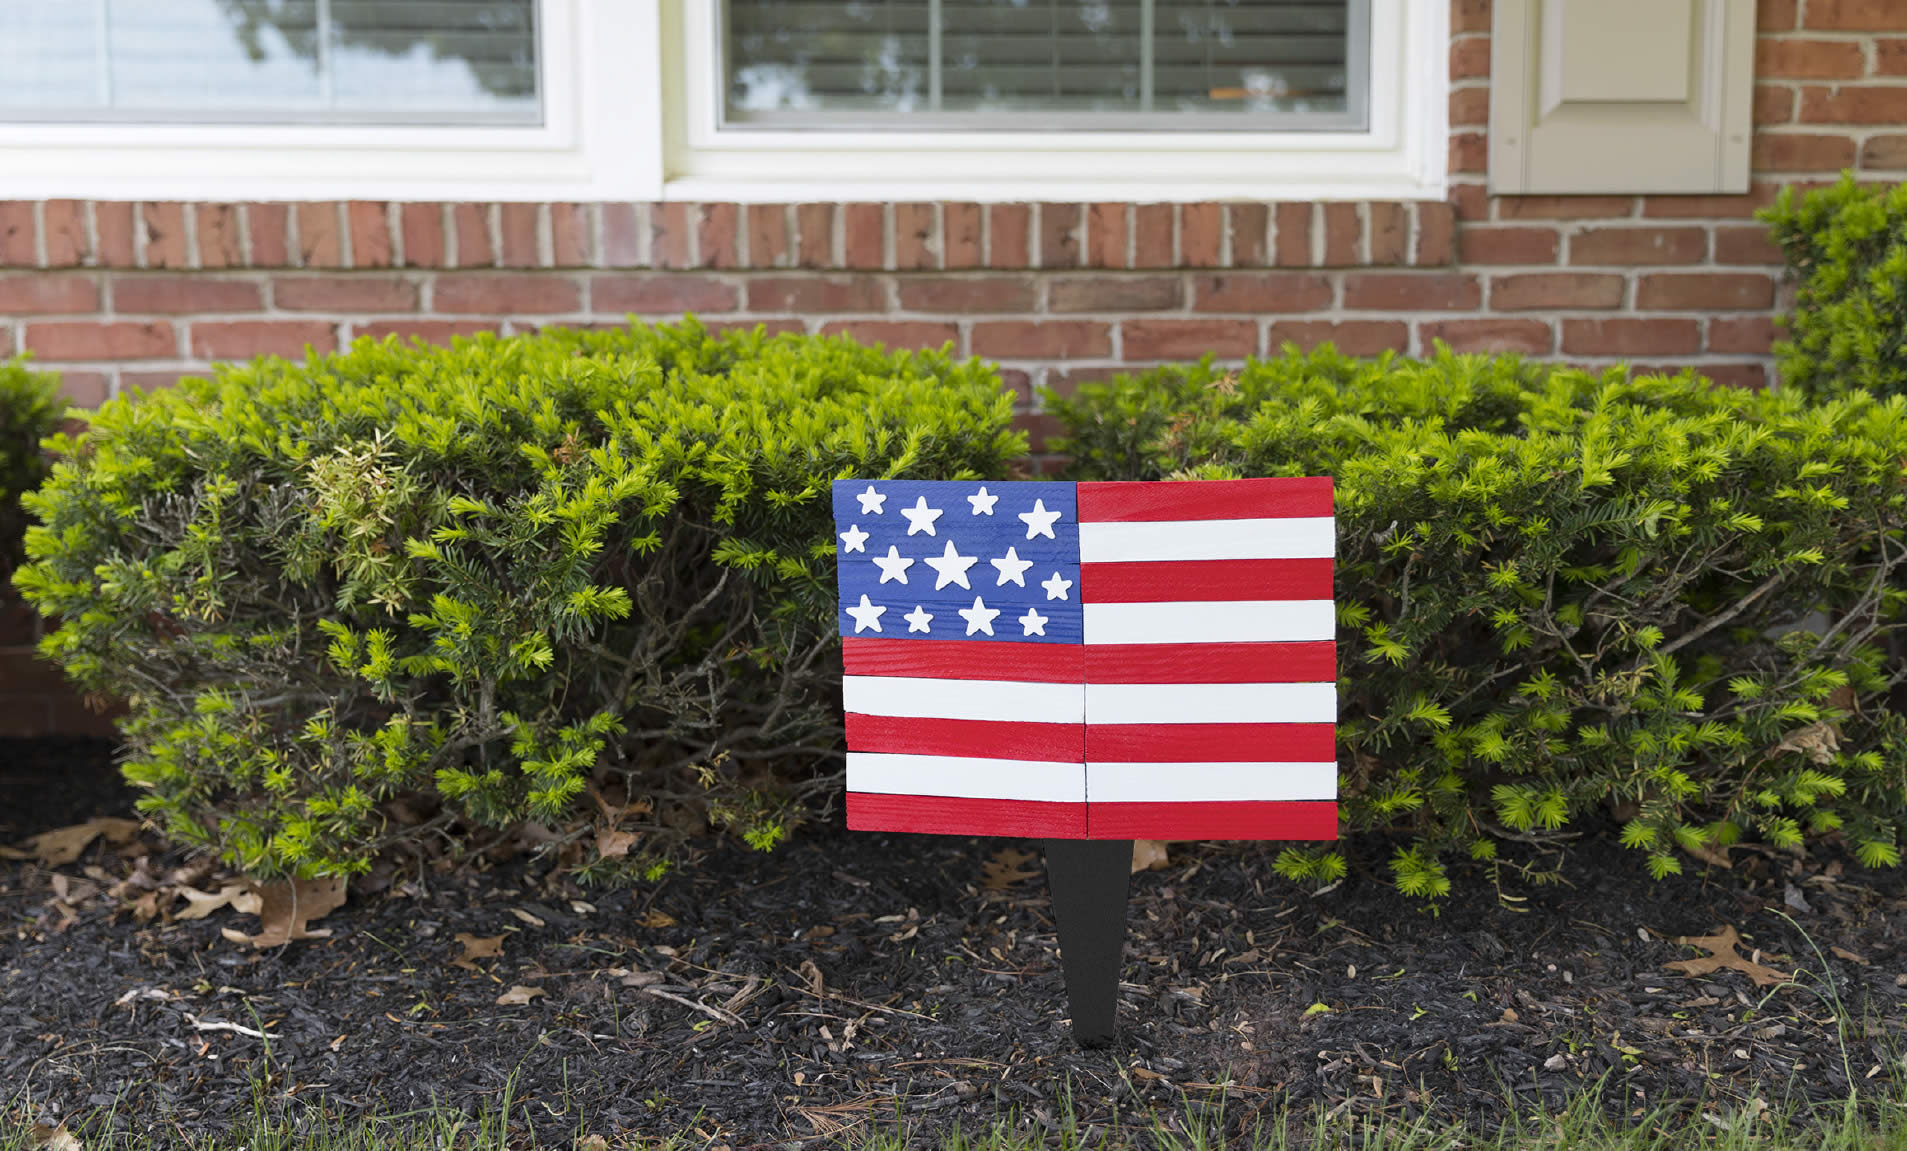 outdoor homemade usa flag